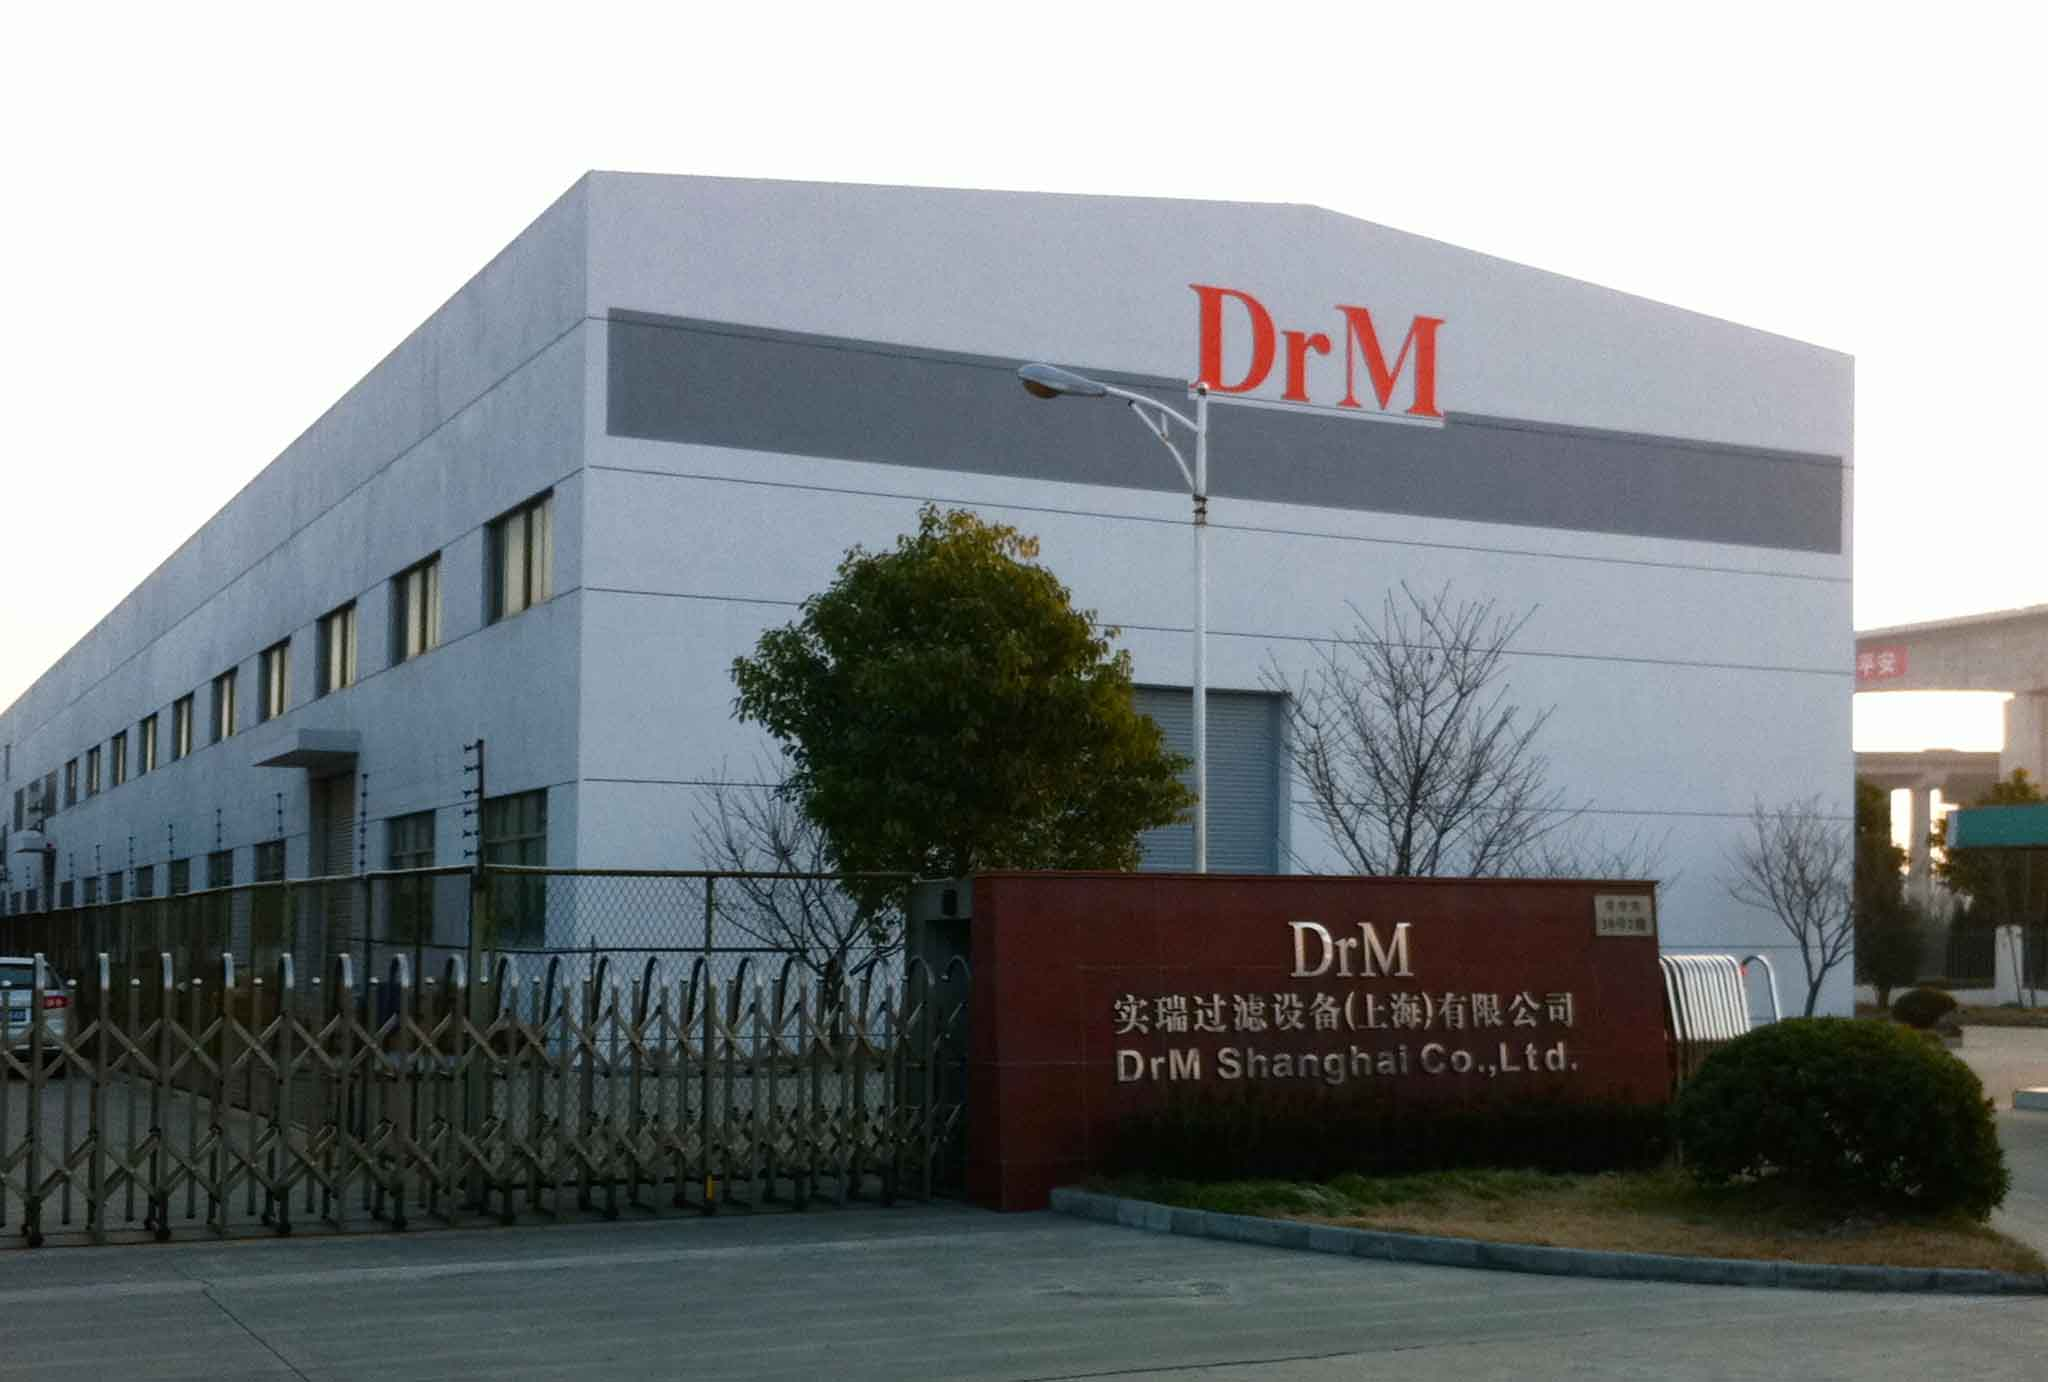 DrM office in China